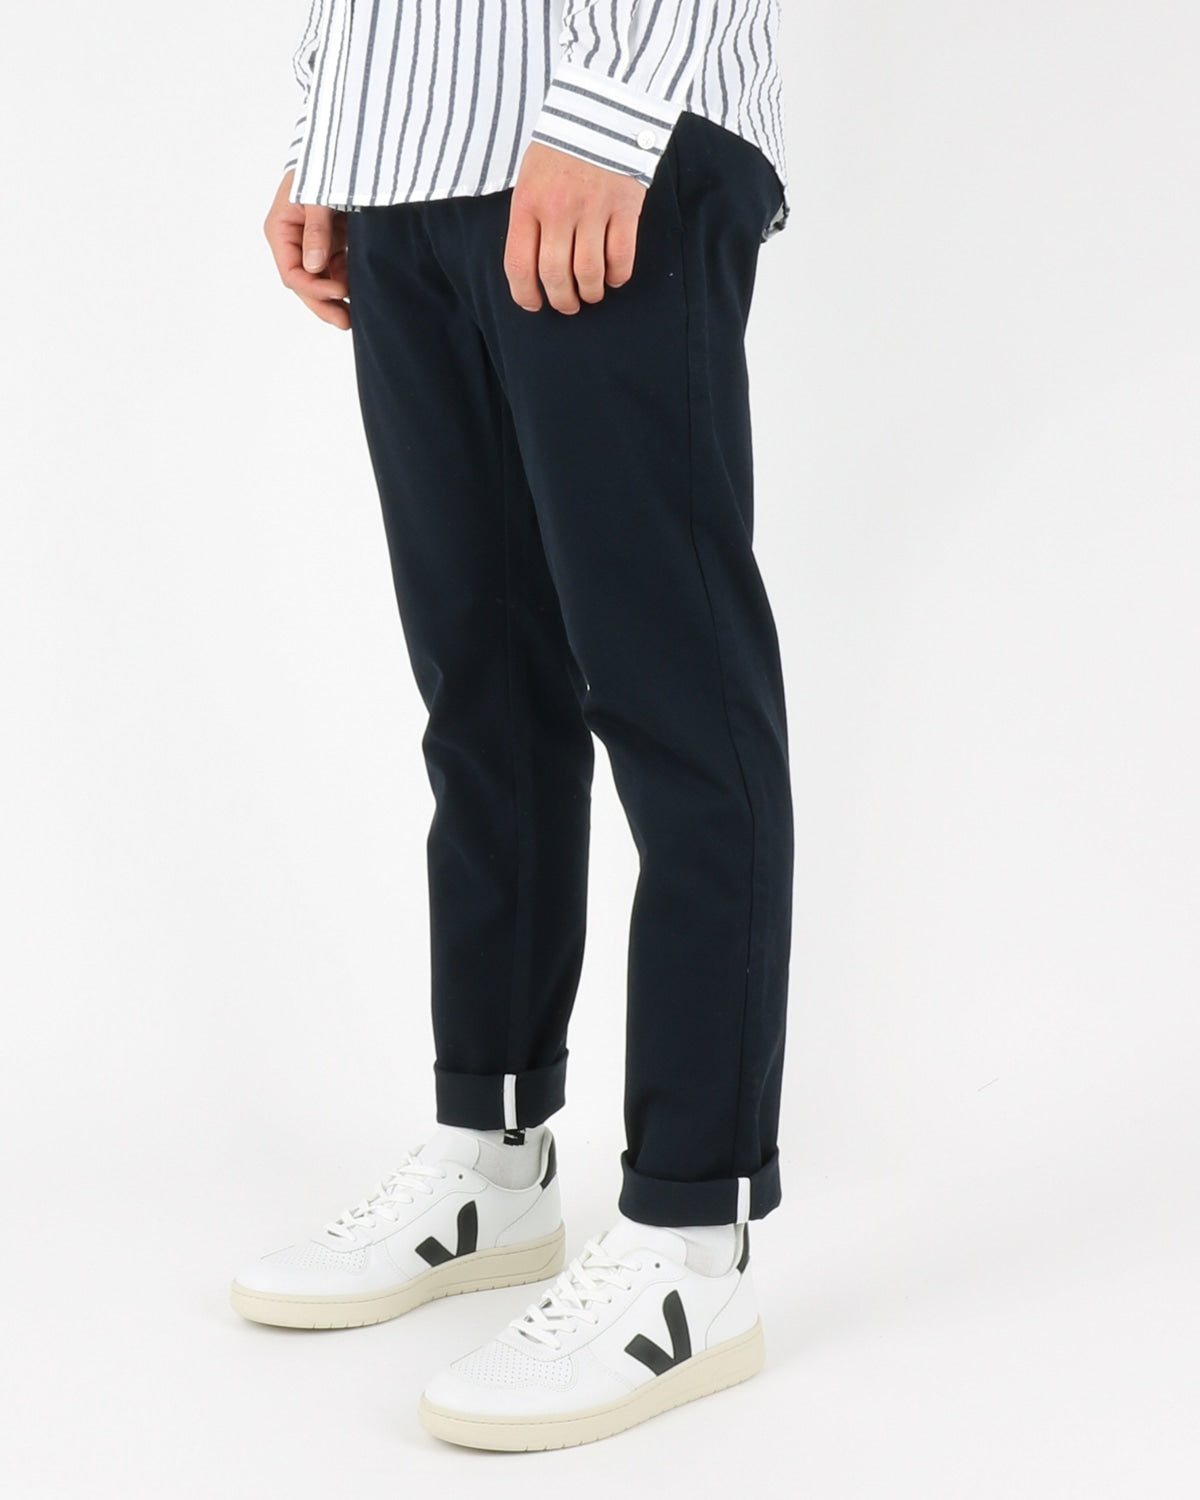 legends_century trousers_navy_2_3